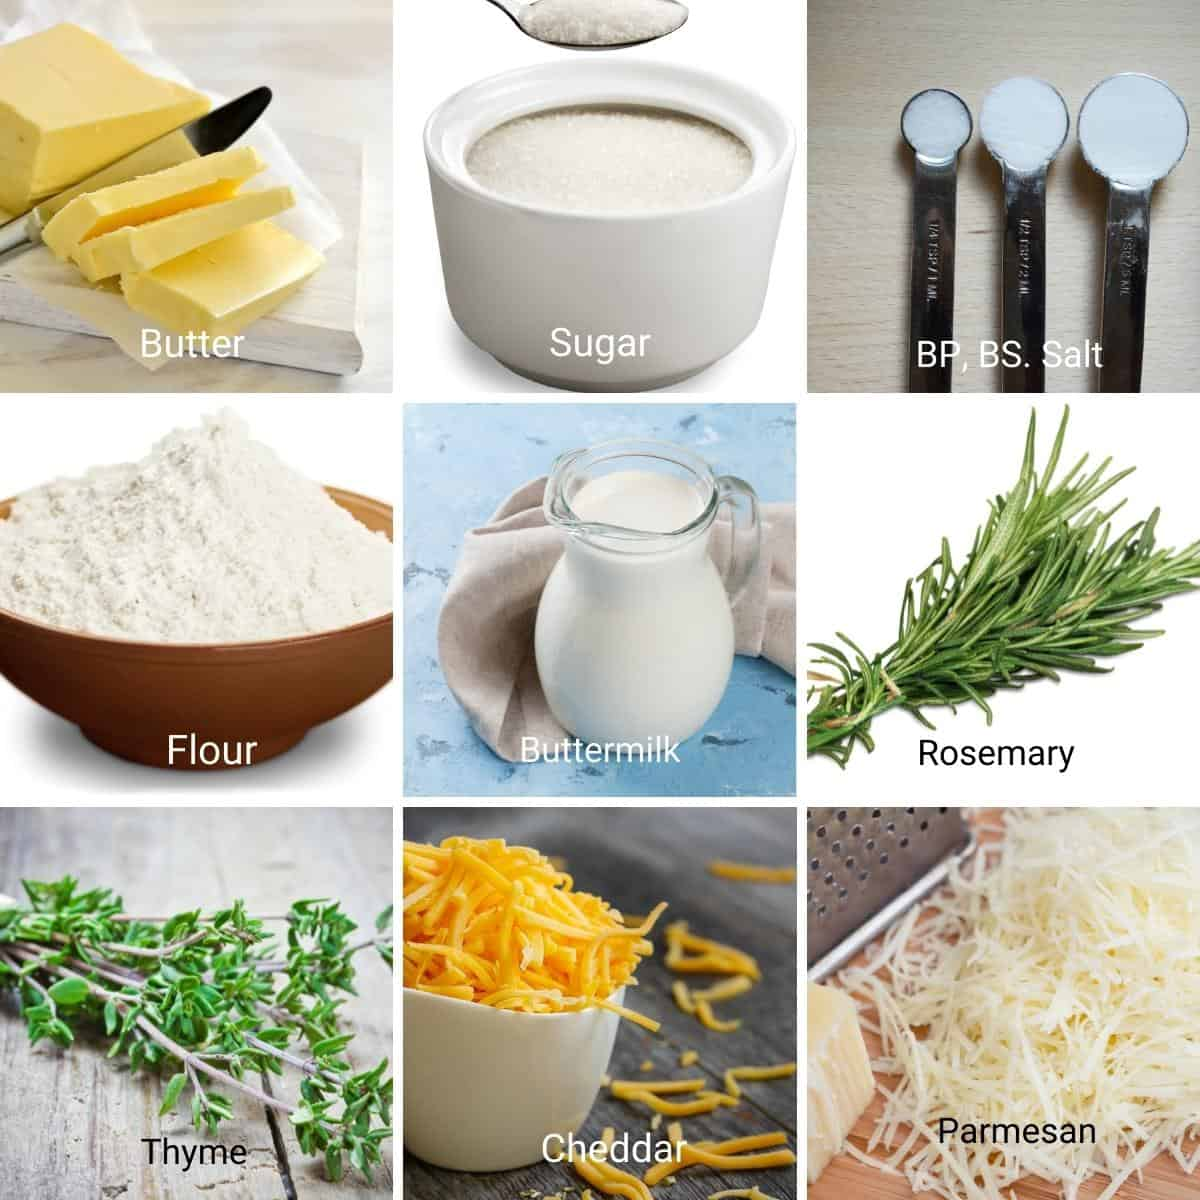 Ingredients for cheddar cheese.